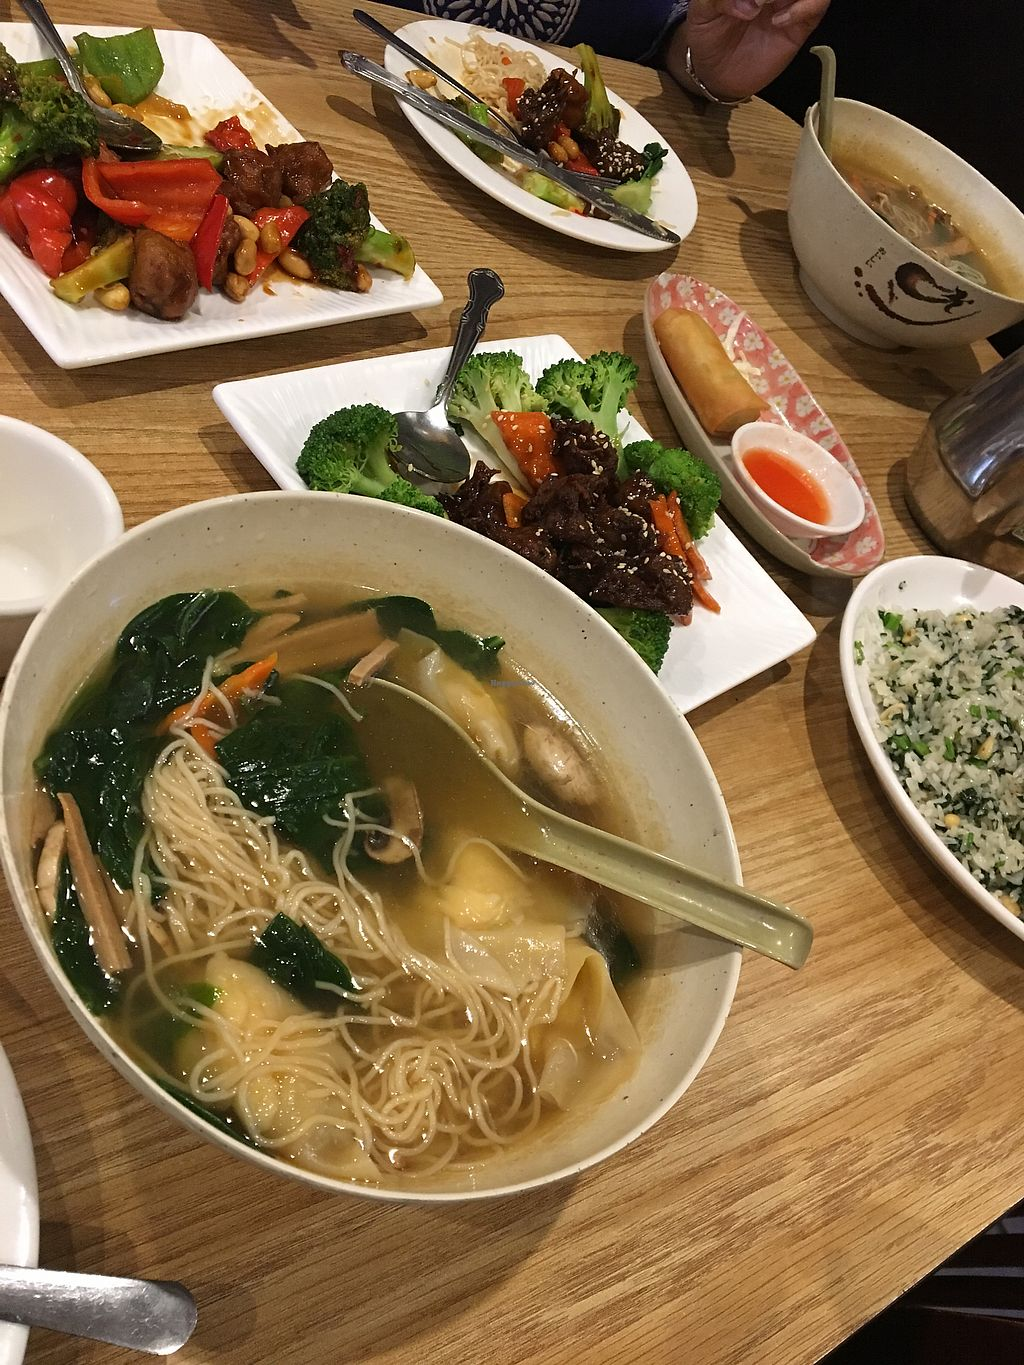 """Photo of Enjoy Vegetarian Restaurant - Financial District  by <a href=""""/members/profile/tylerhebron"""">tylerhebron</a> <br/>Wonton soup, Kung Pao Chicken, Spring Rolls, Spare ribs, and Spinach and pine nut fried rice  <br/> August 8, 2017  - <a href='/contact/abuse/image/19009/290614'>Report</a>"""